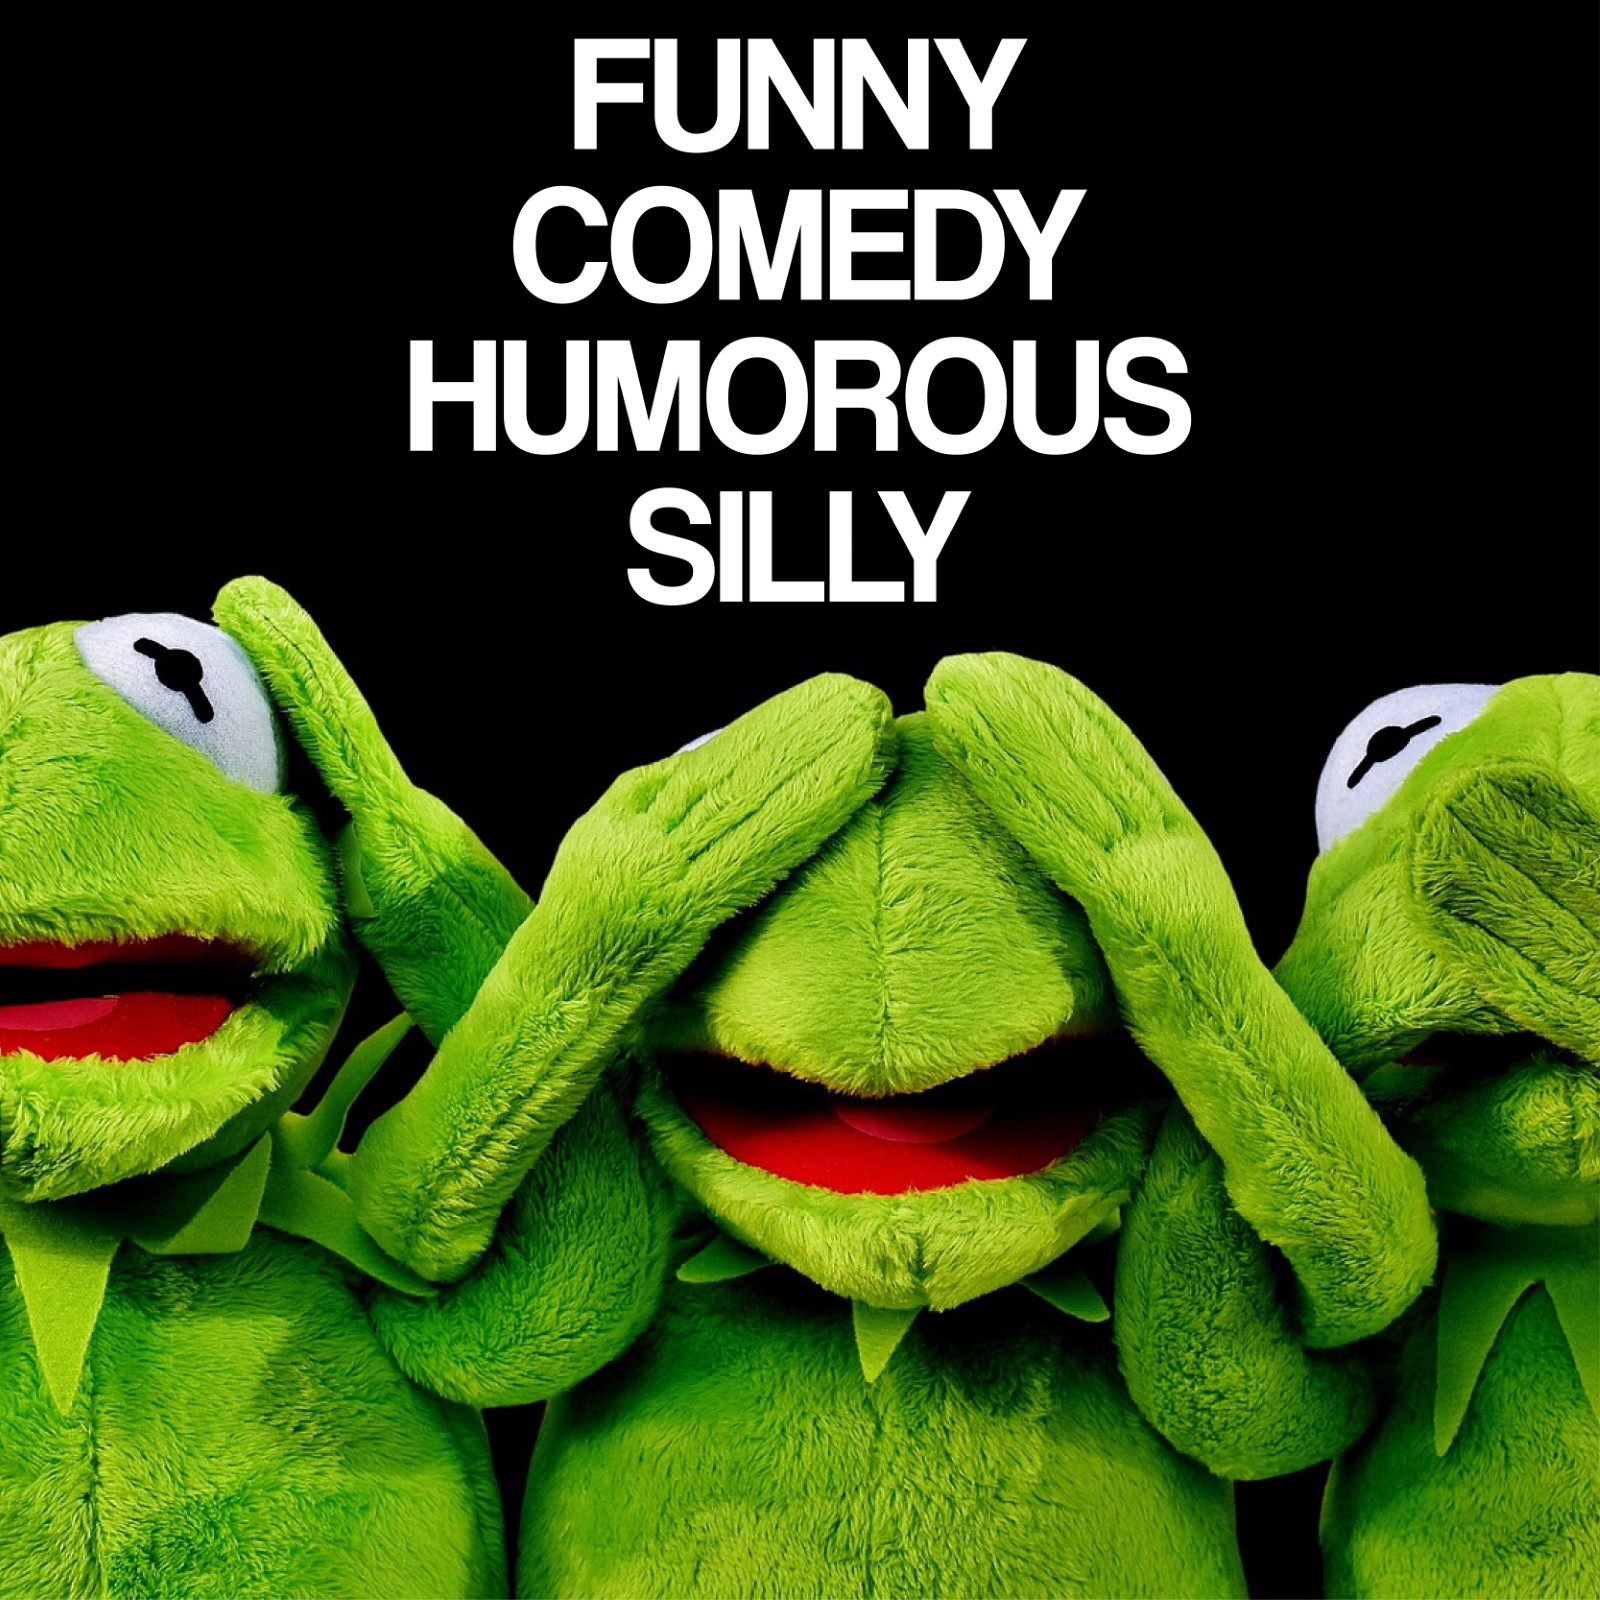 - Funny pieces perfect for comedy, funny or silly content. You can put these on top of anything.(almost)